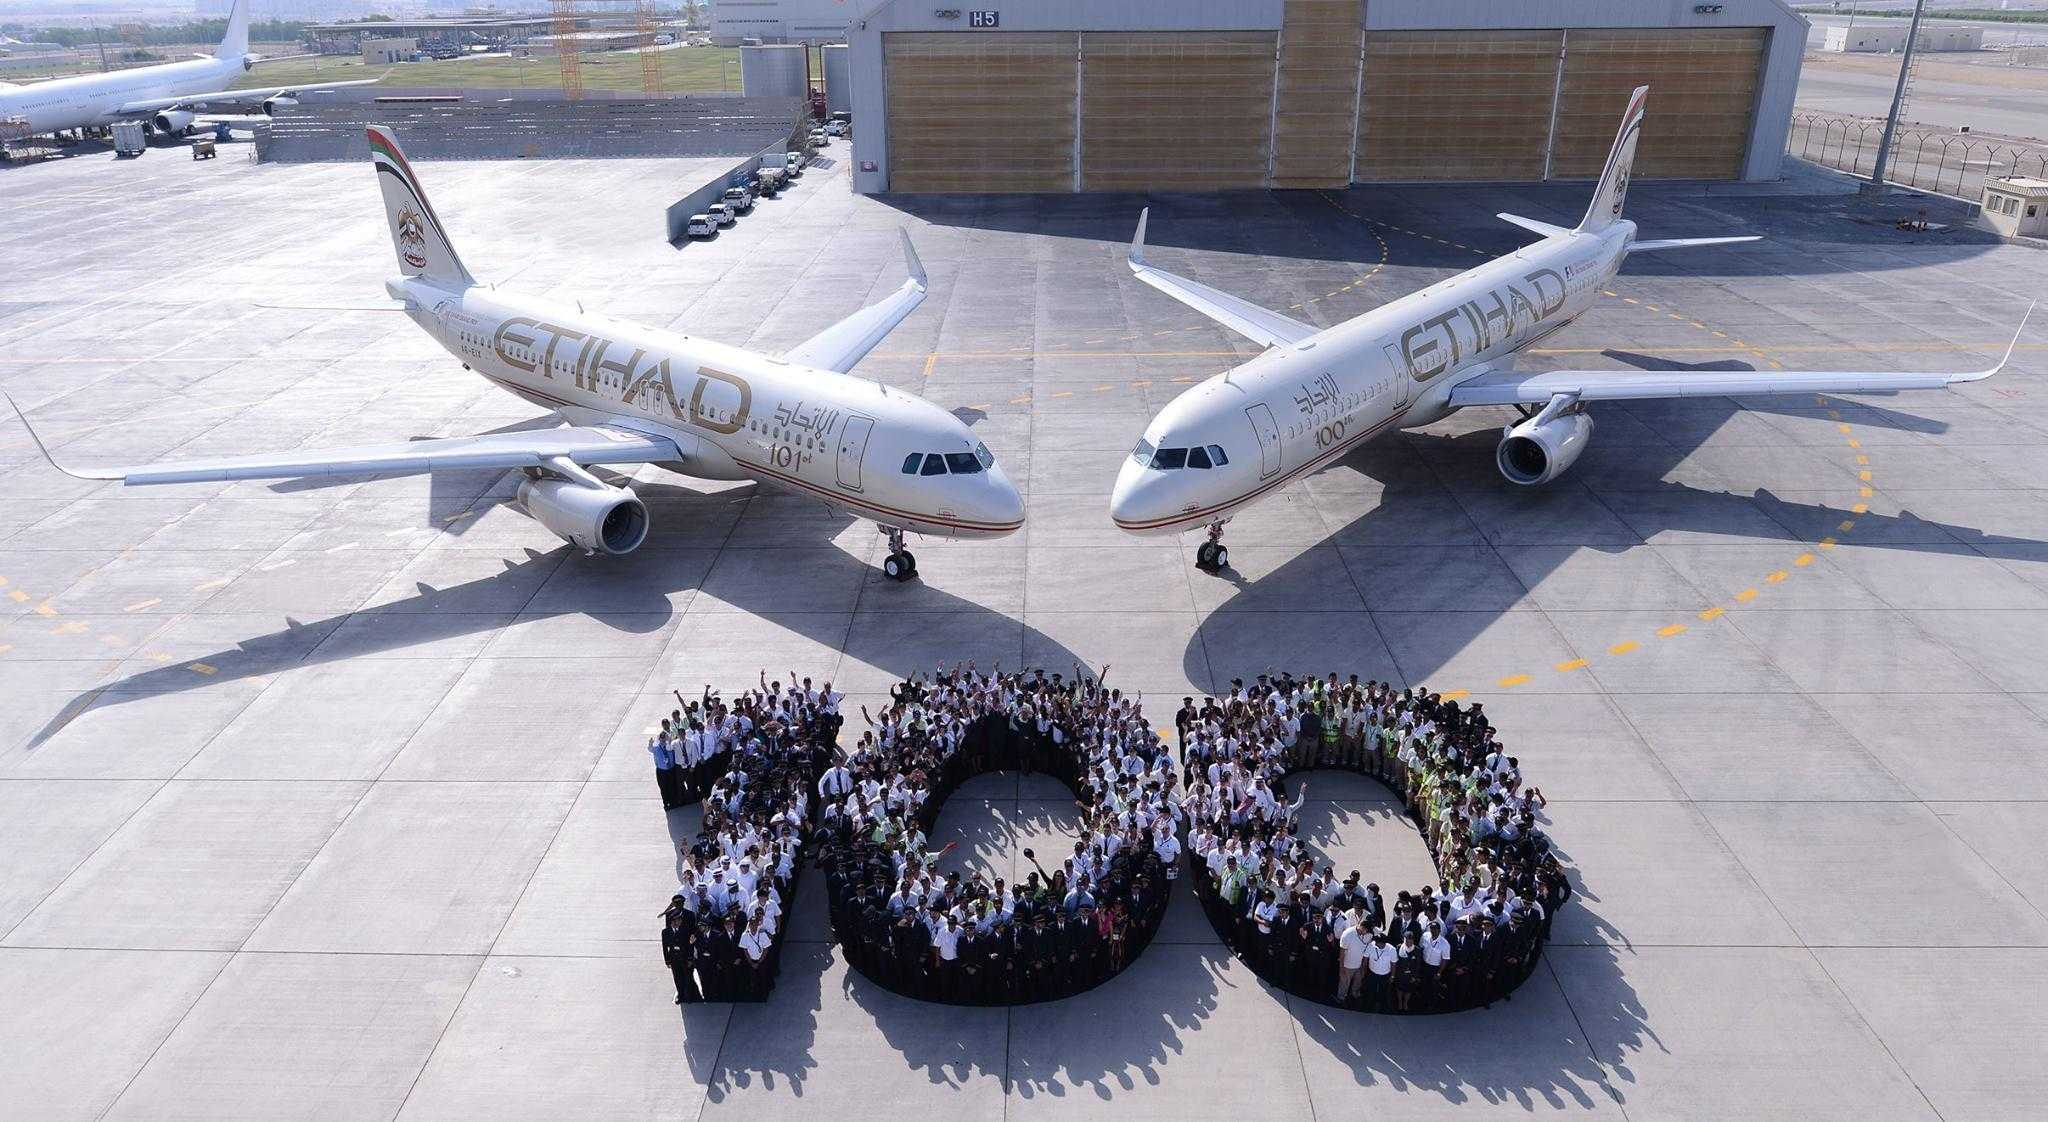 100 si 100 avioane Etihad Airways